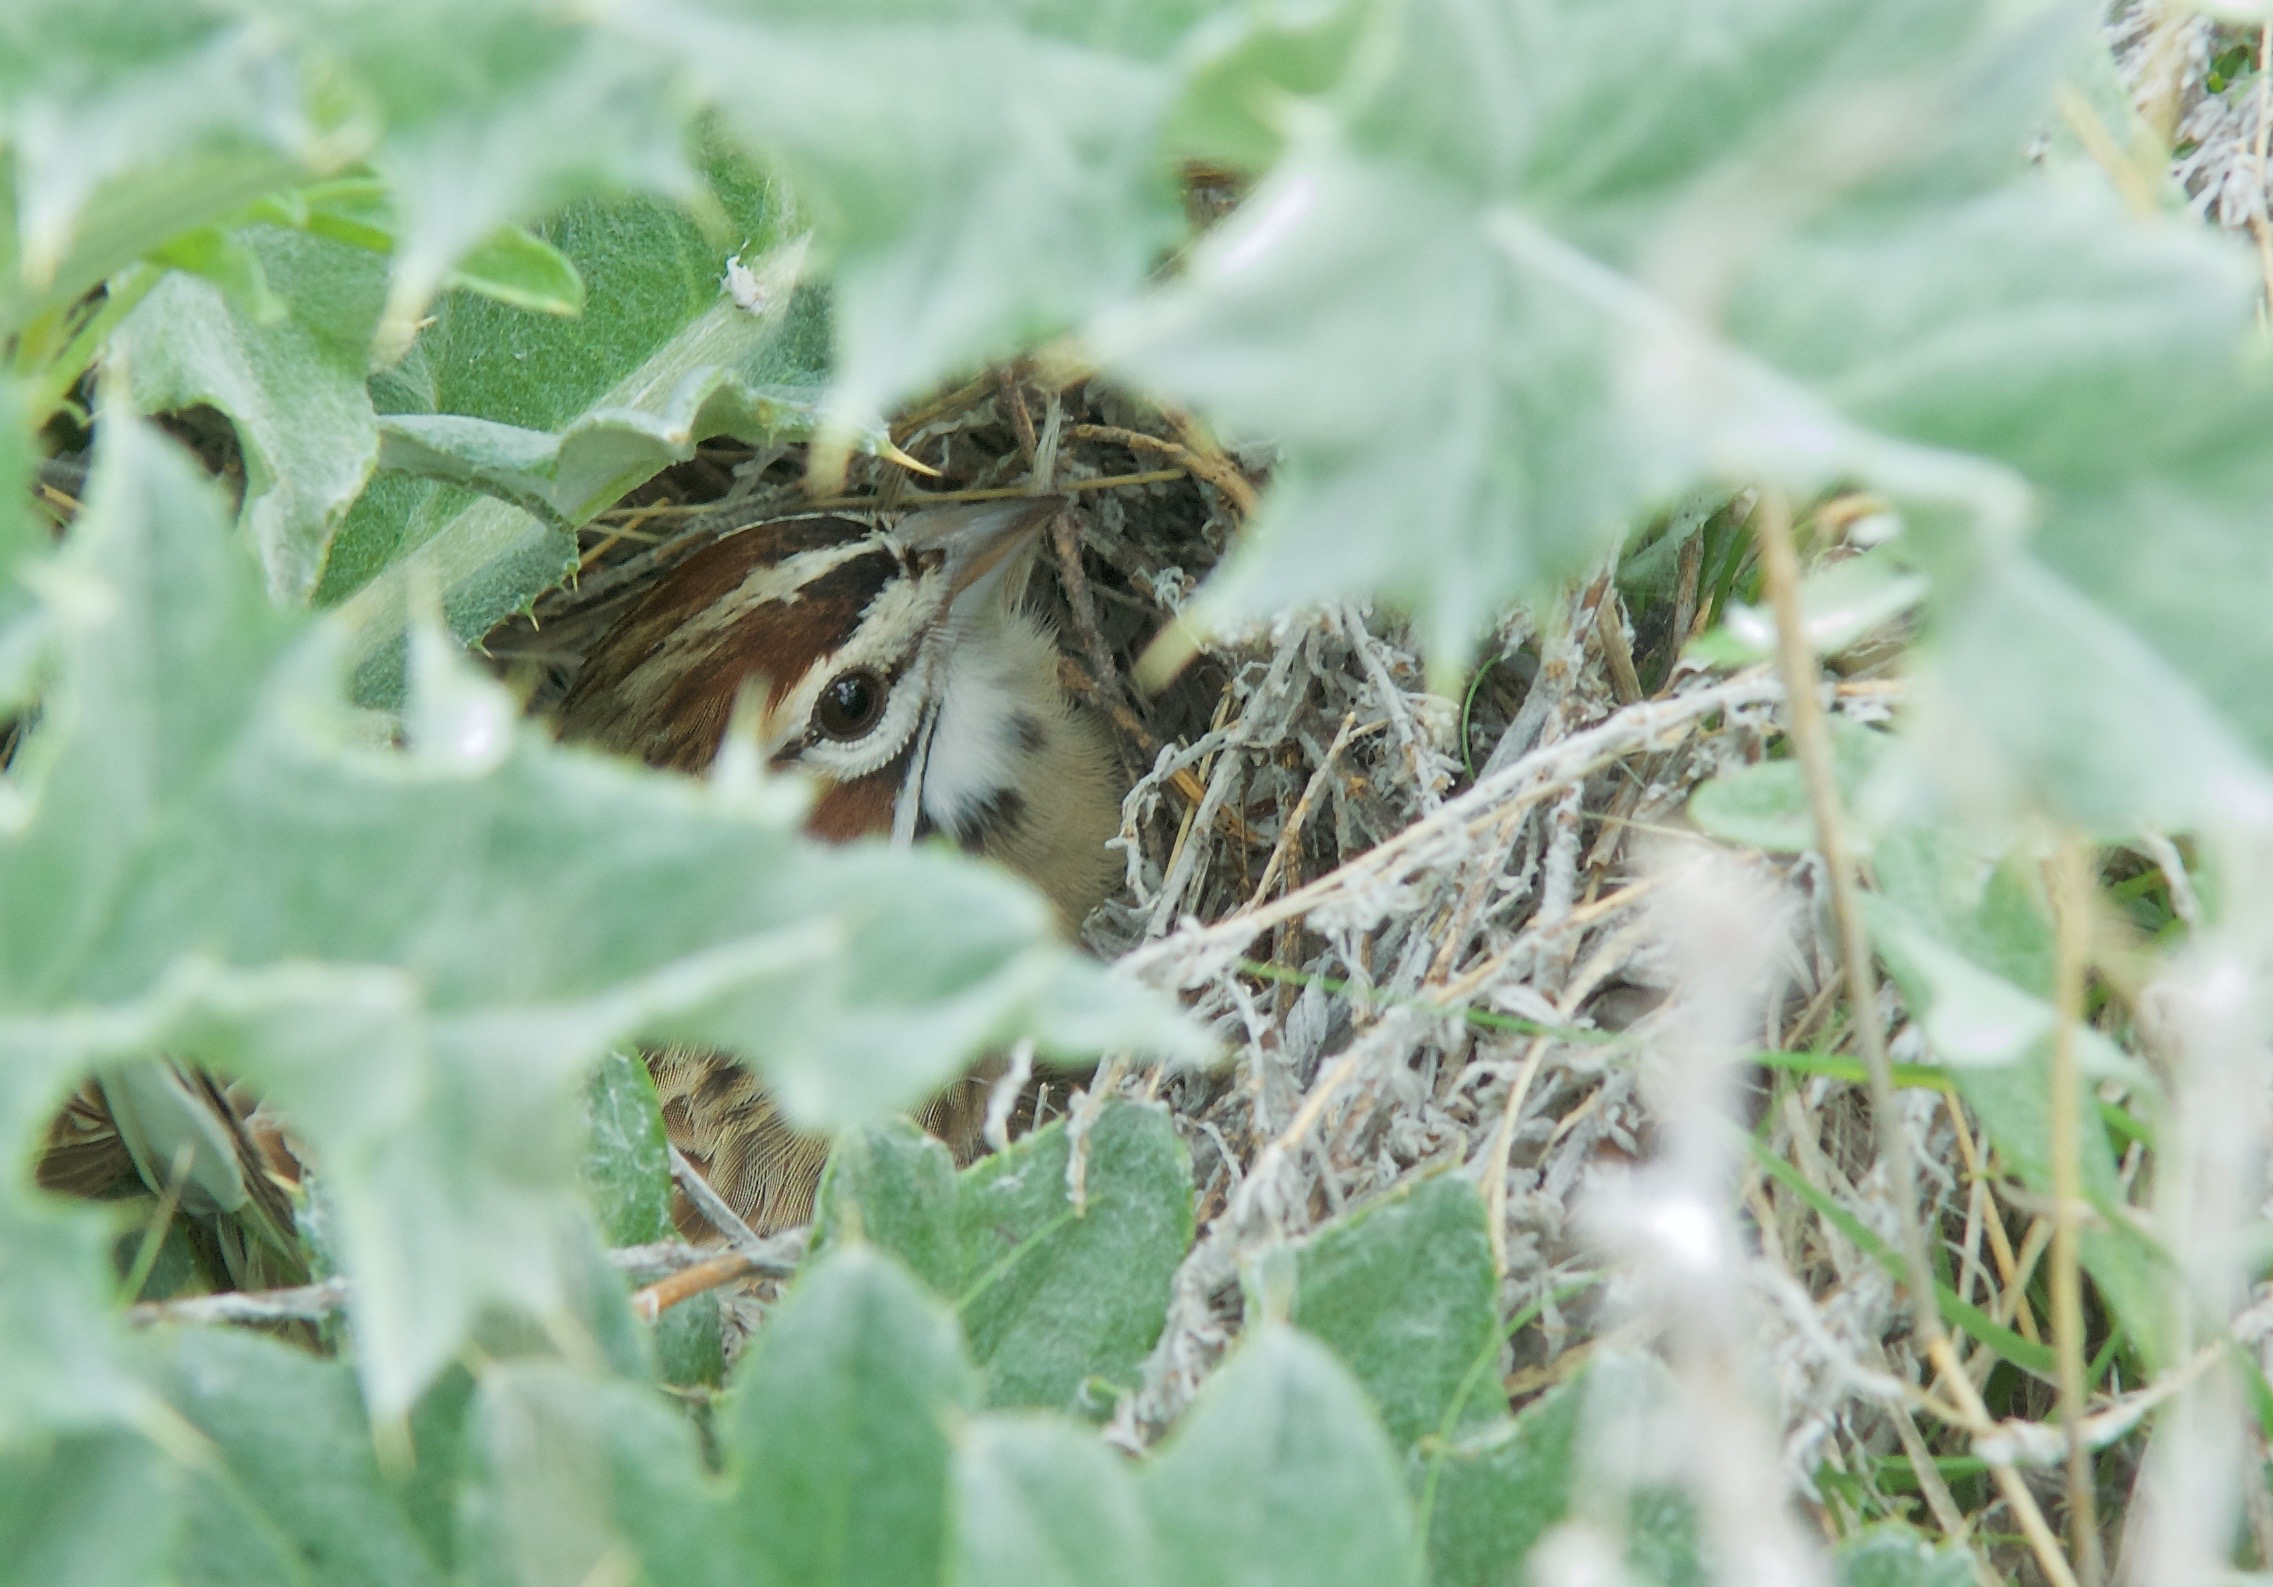 Lark Sparrow on Nest in Wavy-leafed Thistle